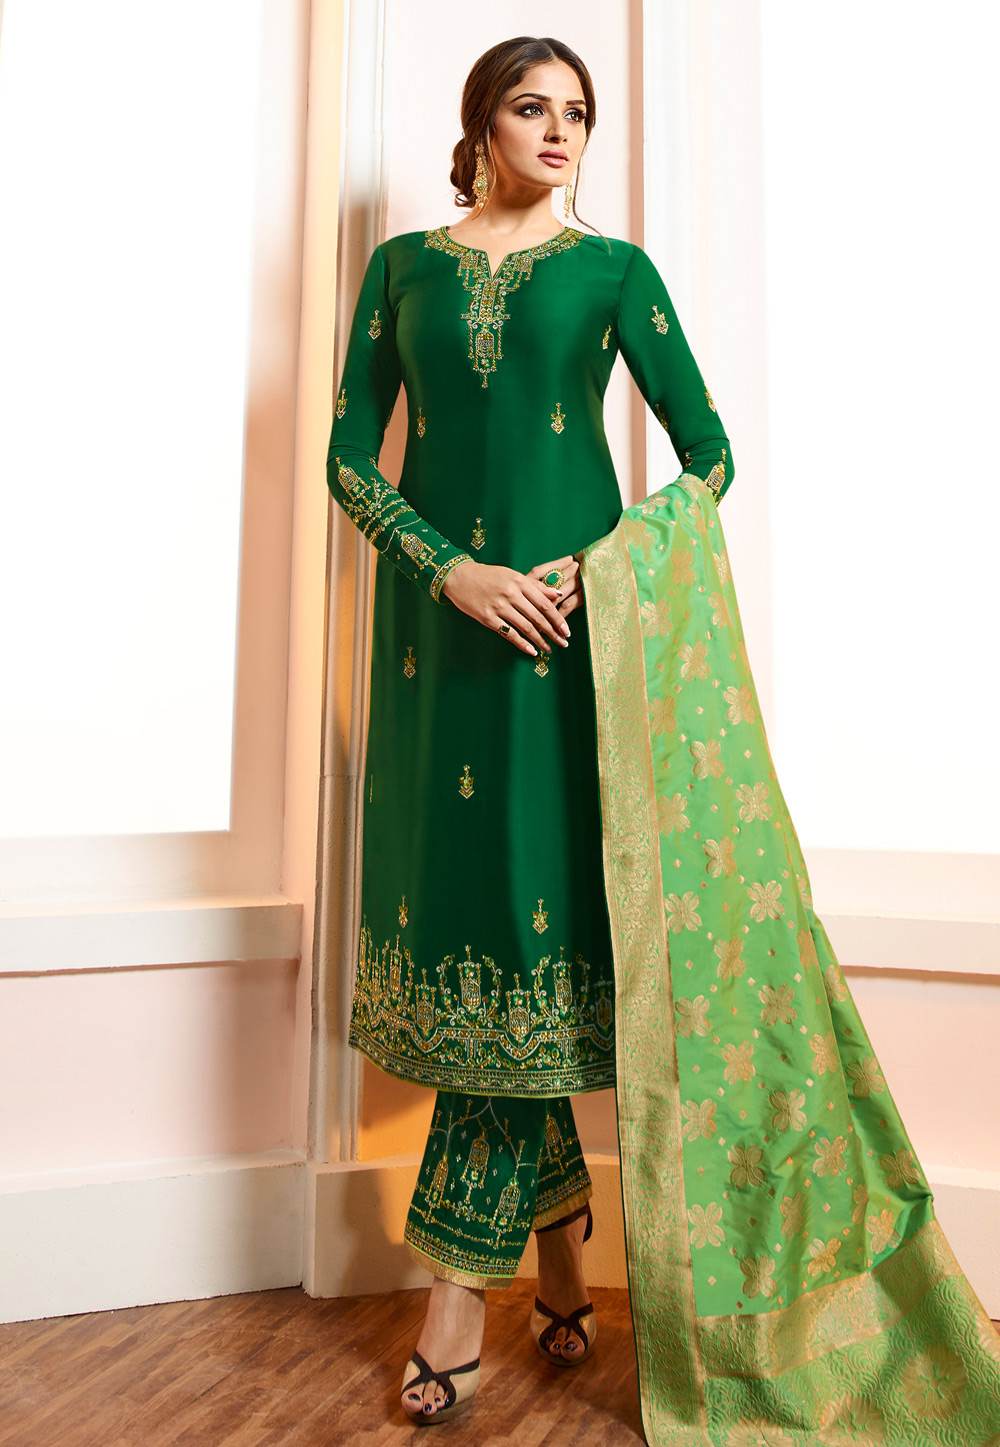 Green Viscose Embroidered Kameez With Pant 169550